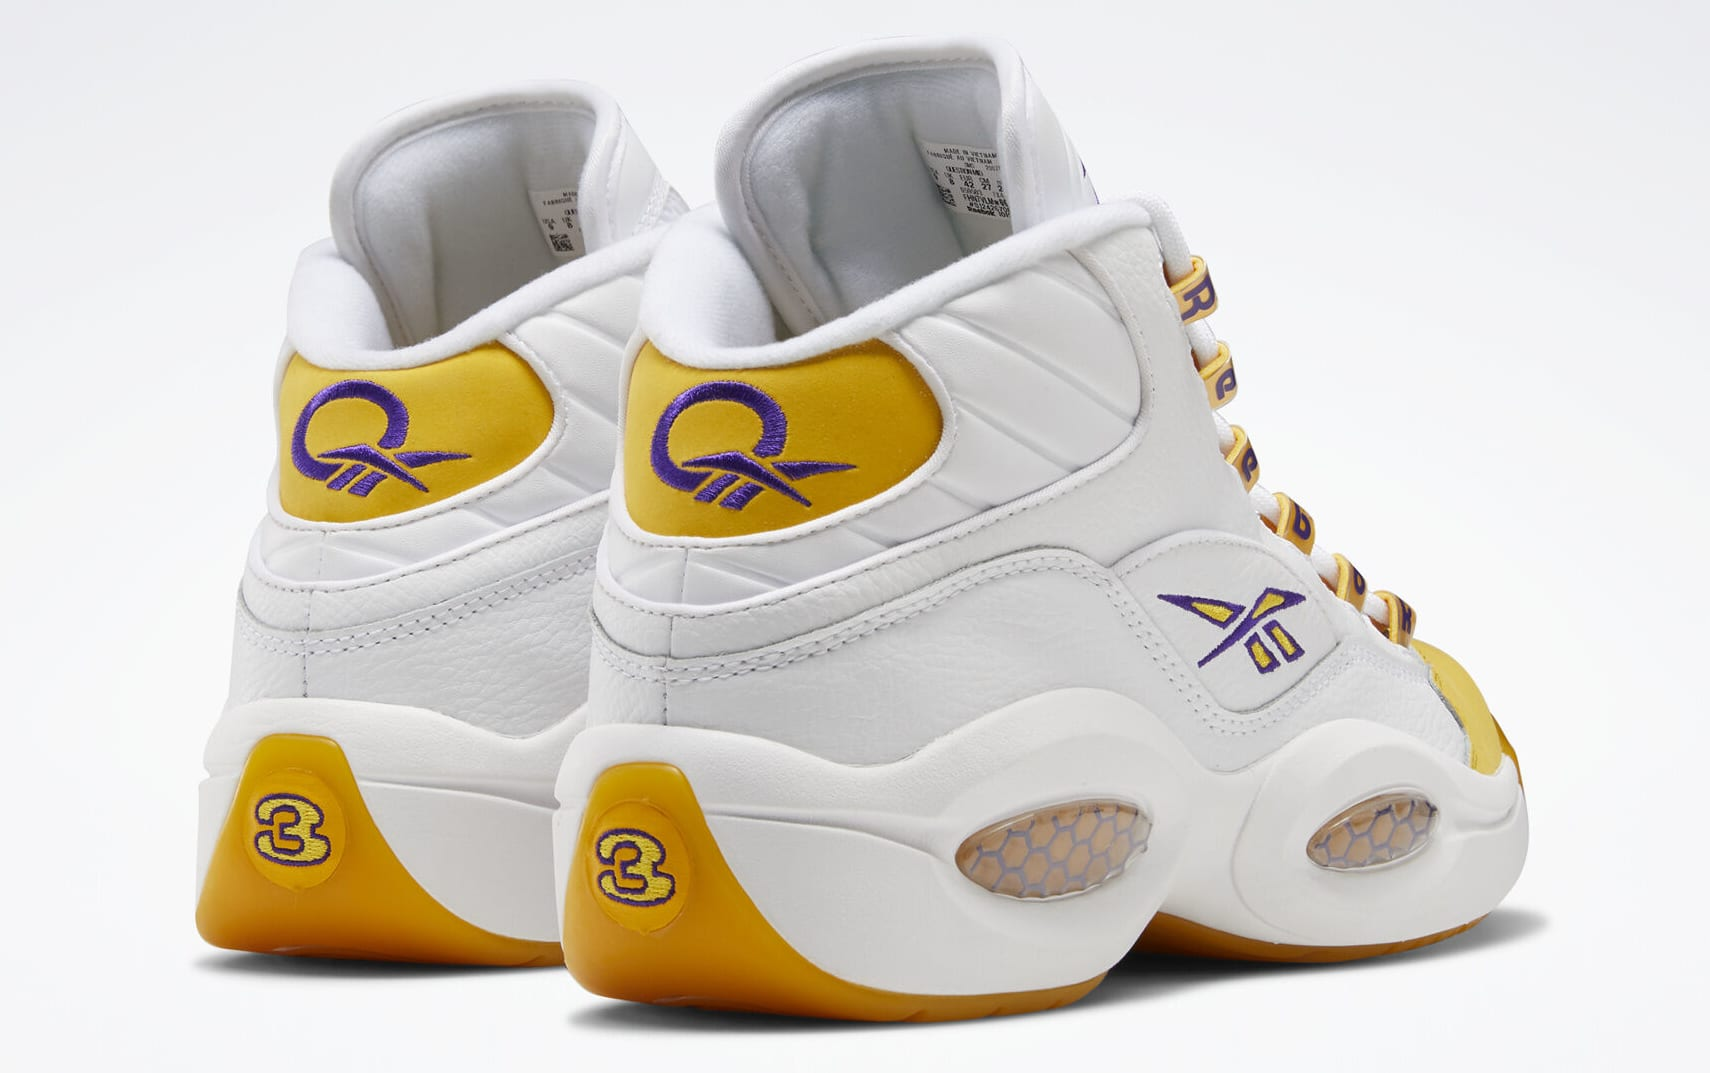 Reebok Question Kobe Yellow Toe Release Date Pair Back